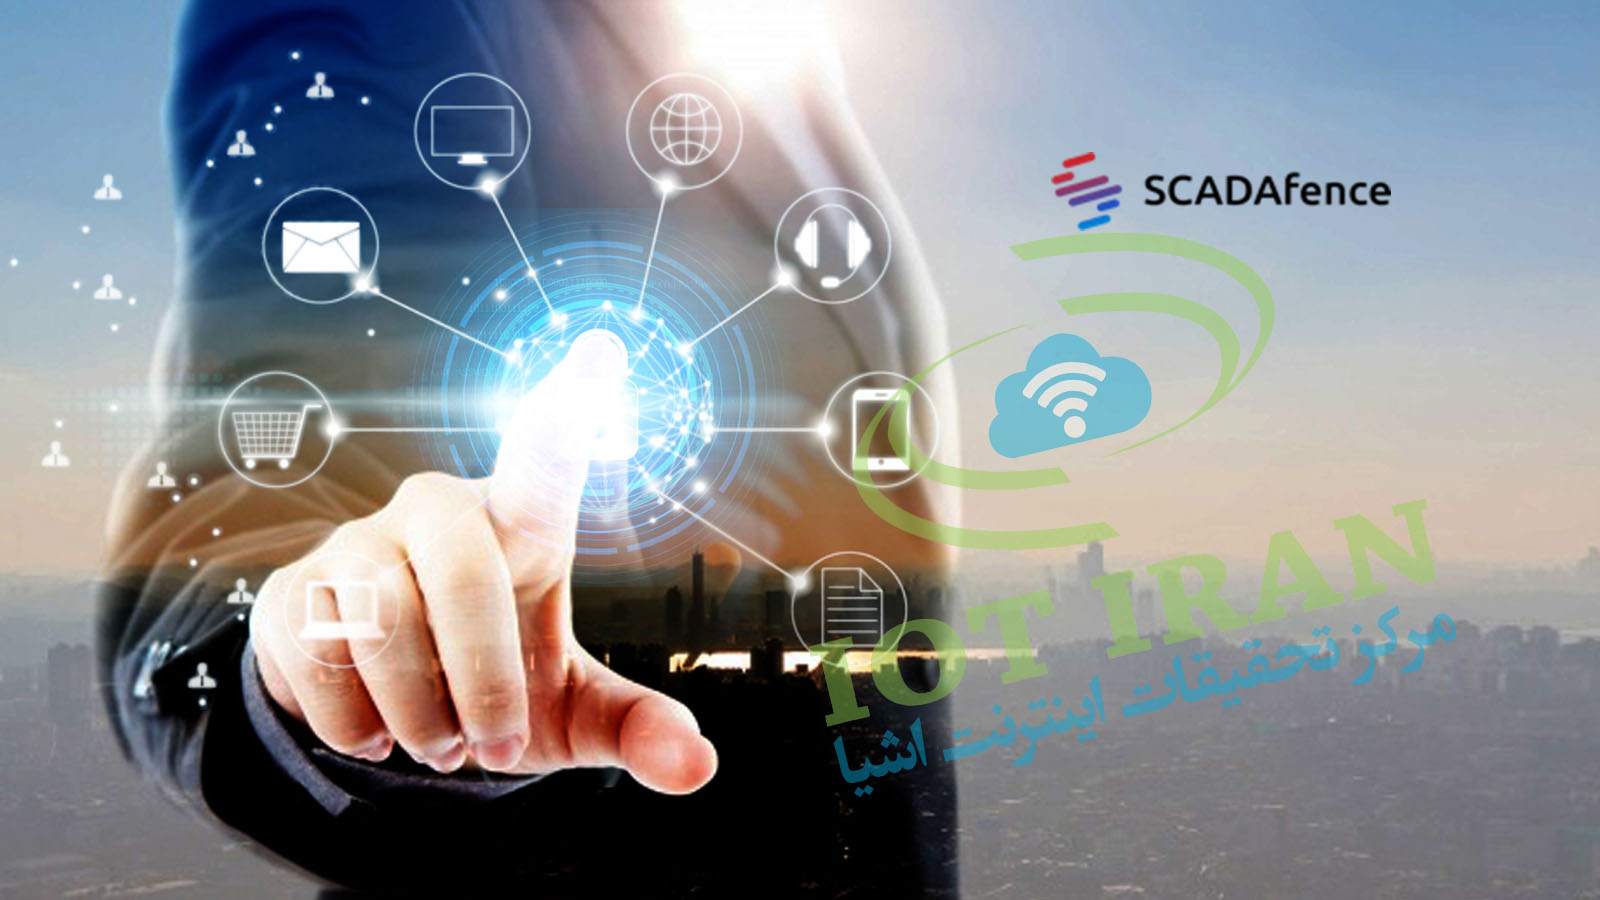 SCADAfence and NRI Secure Join Forces to Secure OT Networks in Japan